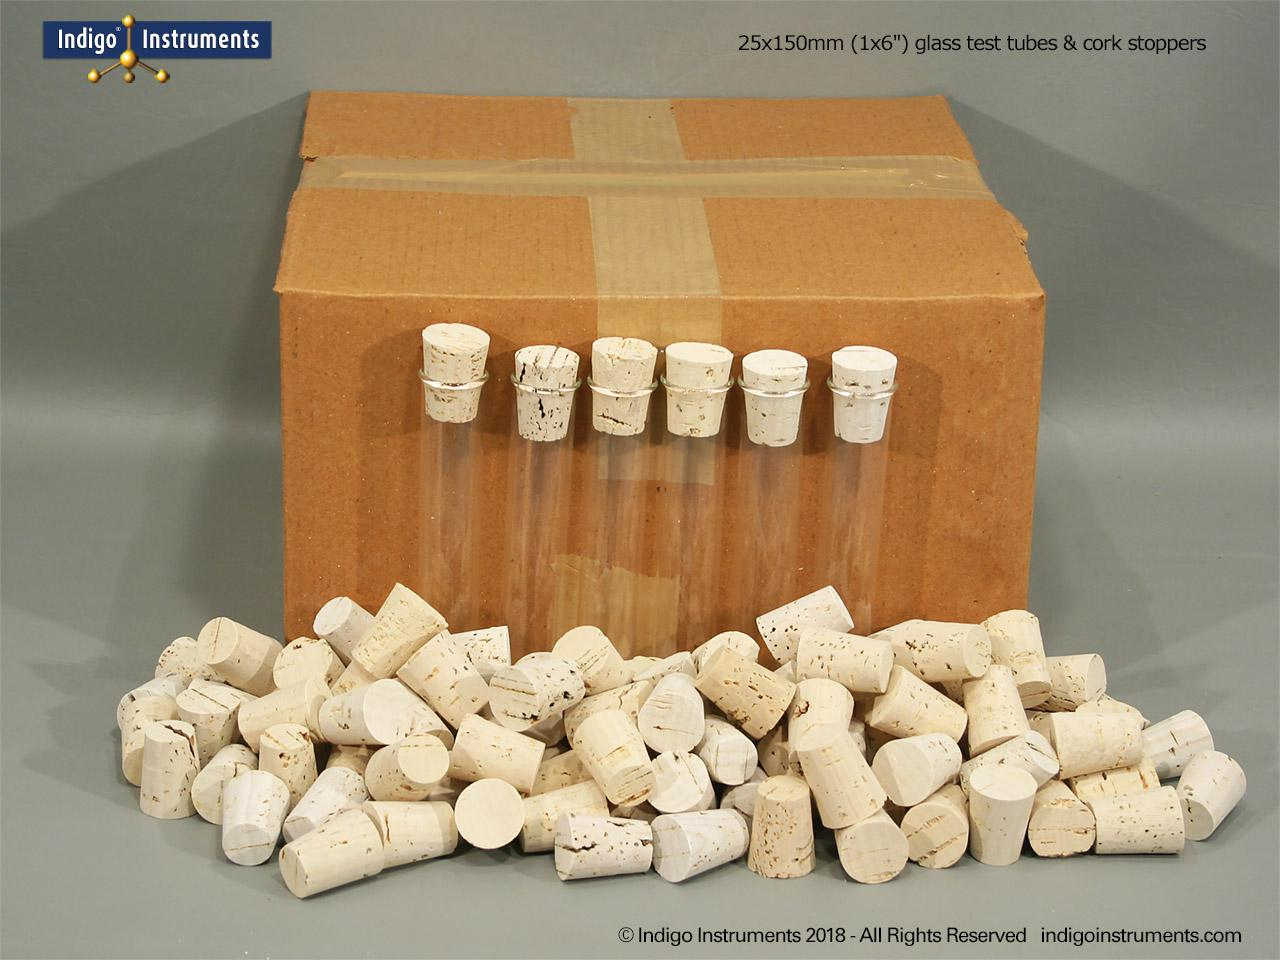 100 25x150mm Test Tubes/Corks